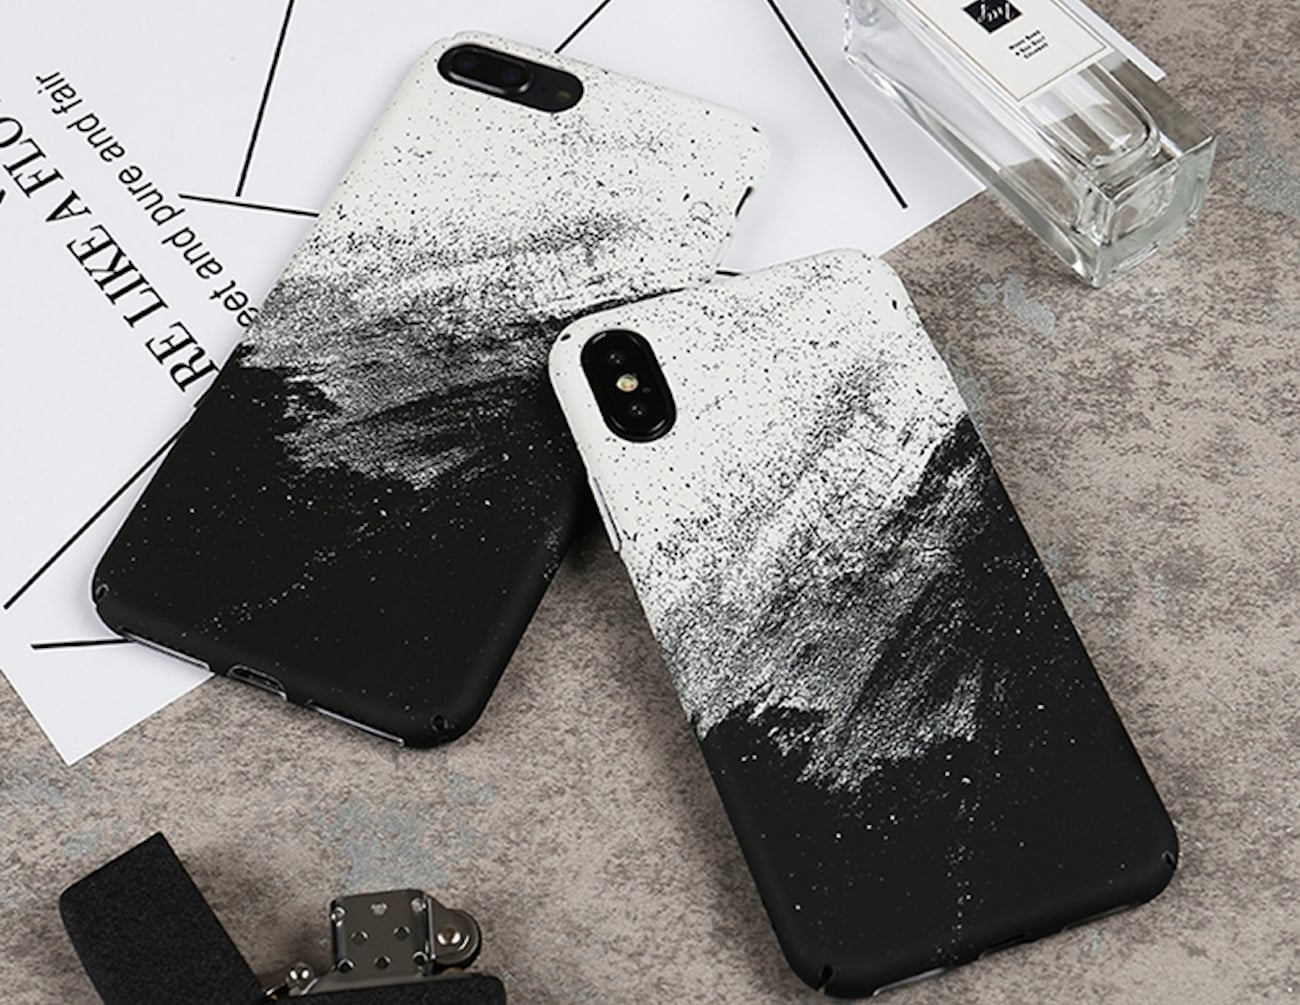 Abstract Graffiti iPhone Case looks like a work of art